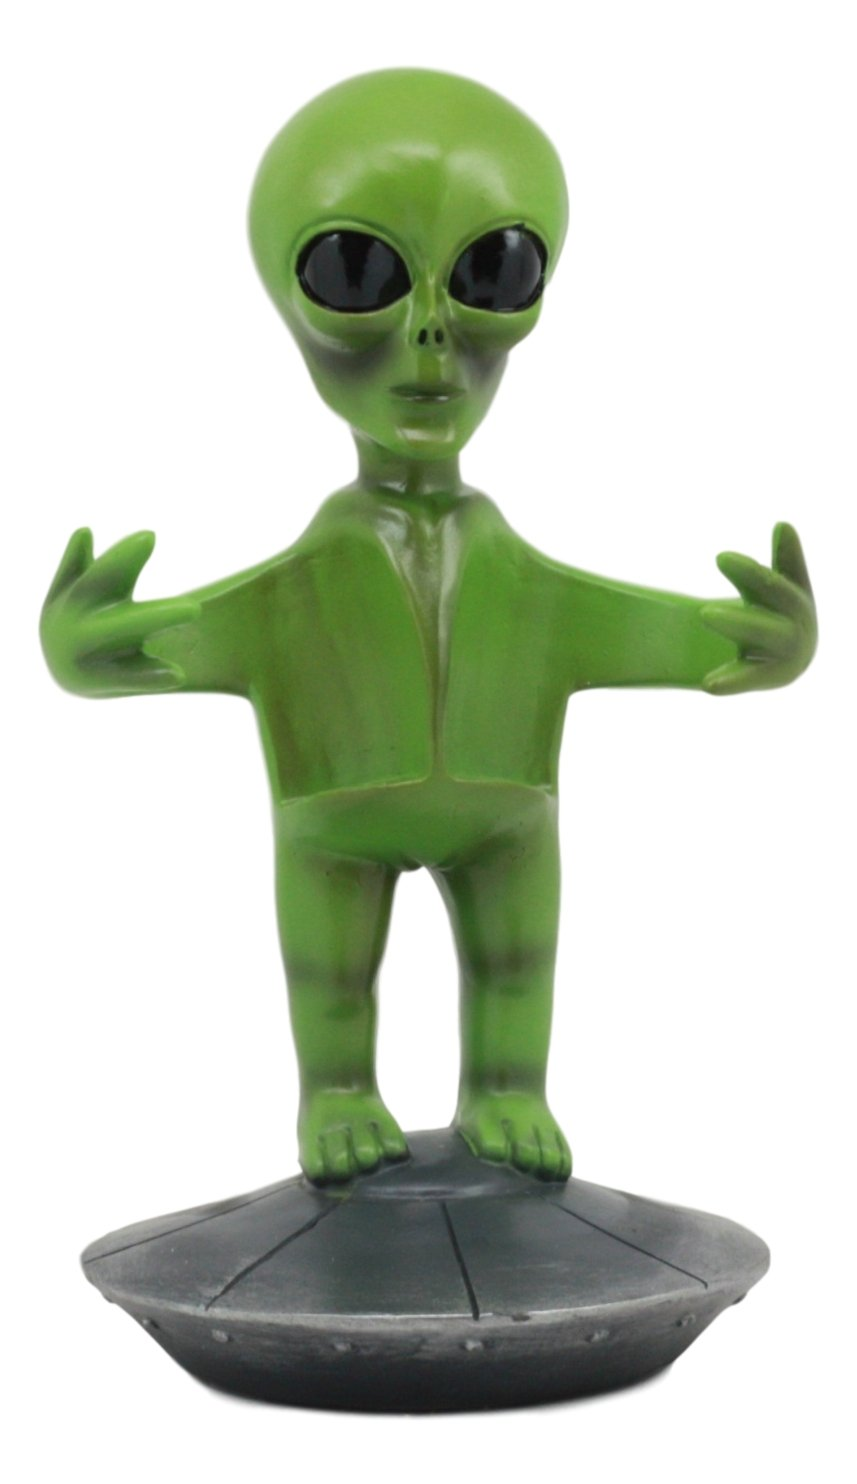 Ebros UFO Outer Space Colony Extra Terrestrial Green Roswell Alien On Flying Saucer Spaceship Salt And Pepper Shakers Holder Statue 7Tall For Kitchen Decor Event Hosting Chef Hobbyist Ebros Gift